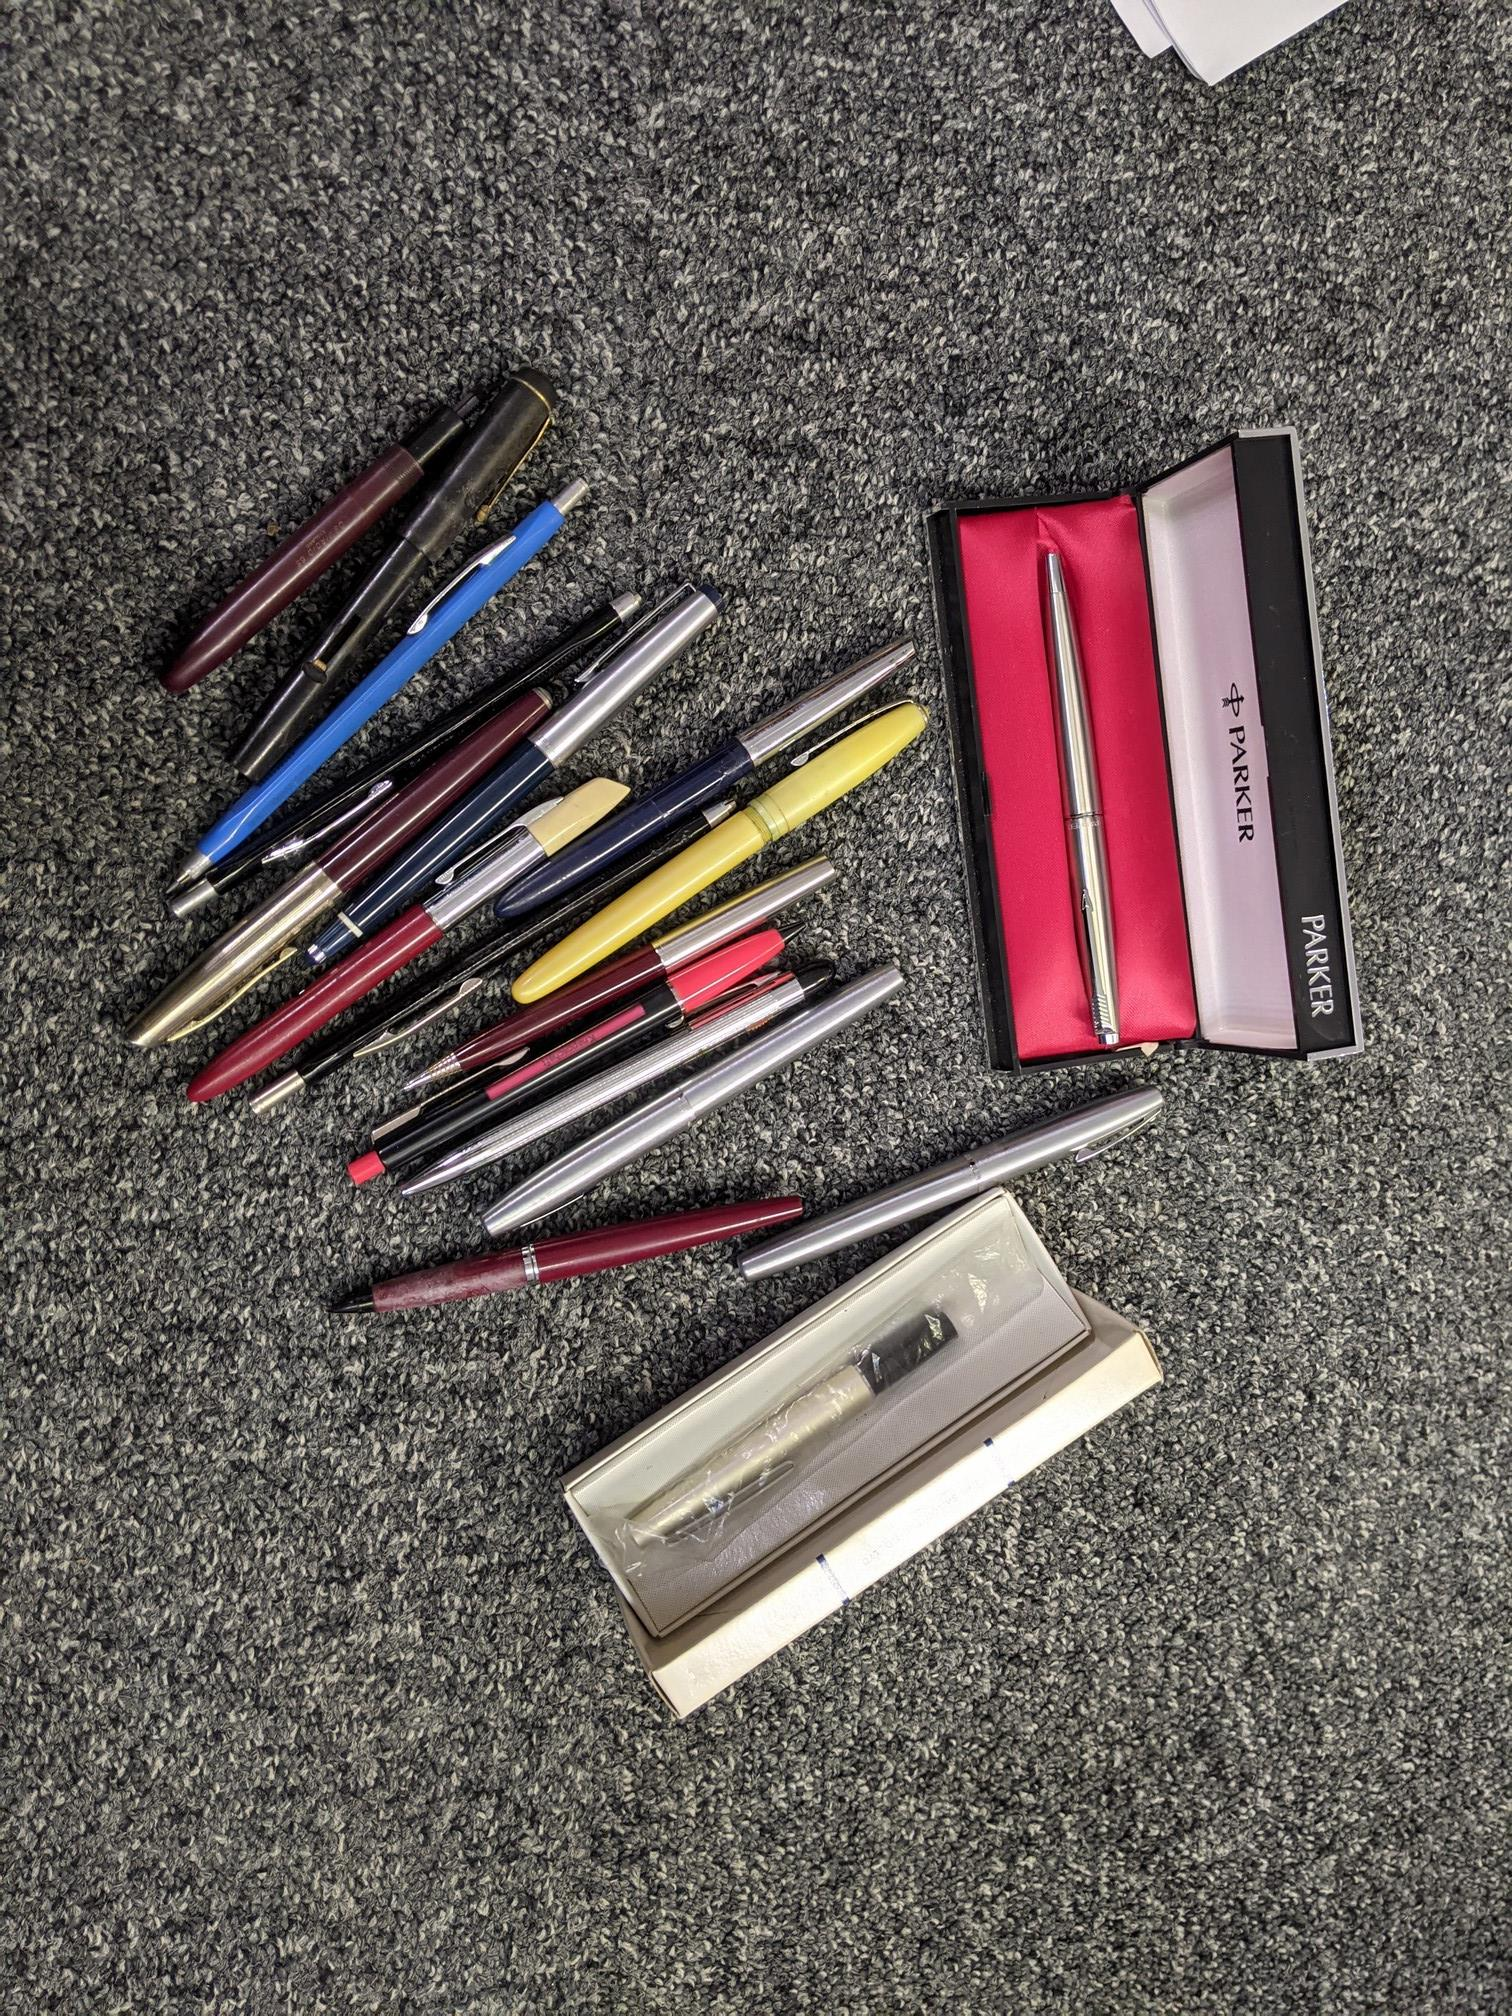 Box of assorted pens and similar ephemera to include; Parker, Sheaffer ball point refills, - Image 2 of 2